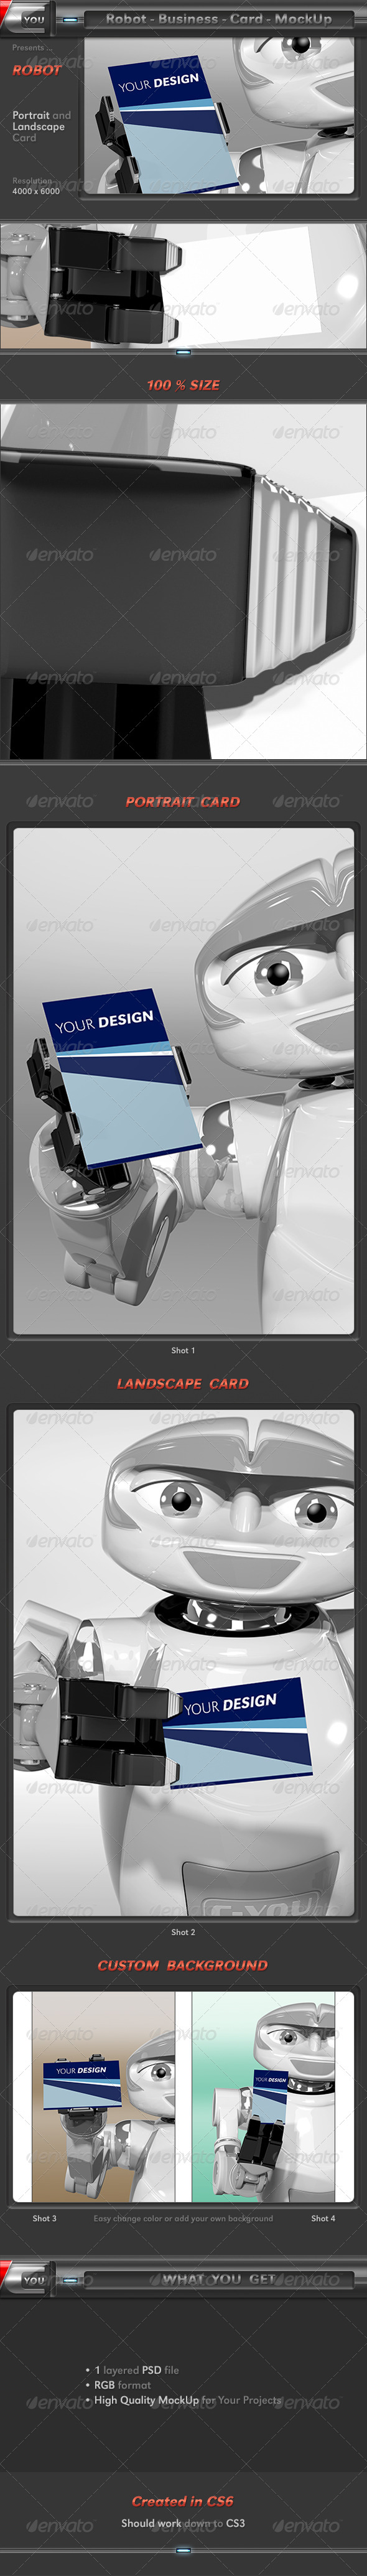 Robot Business Card MockUp - Business Cards Print